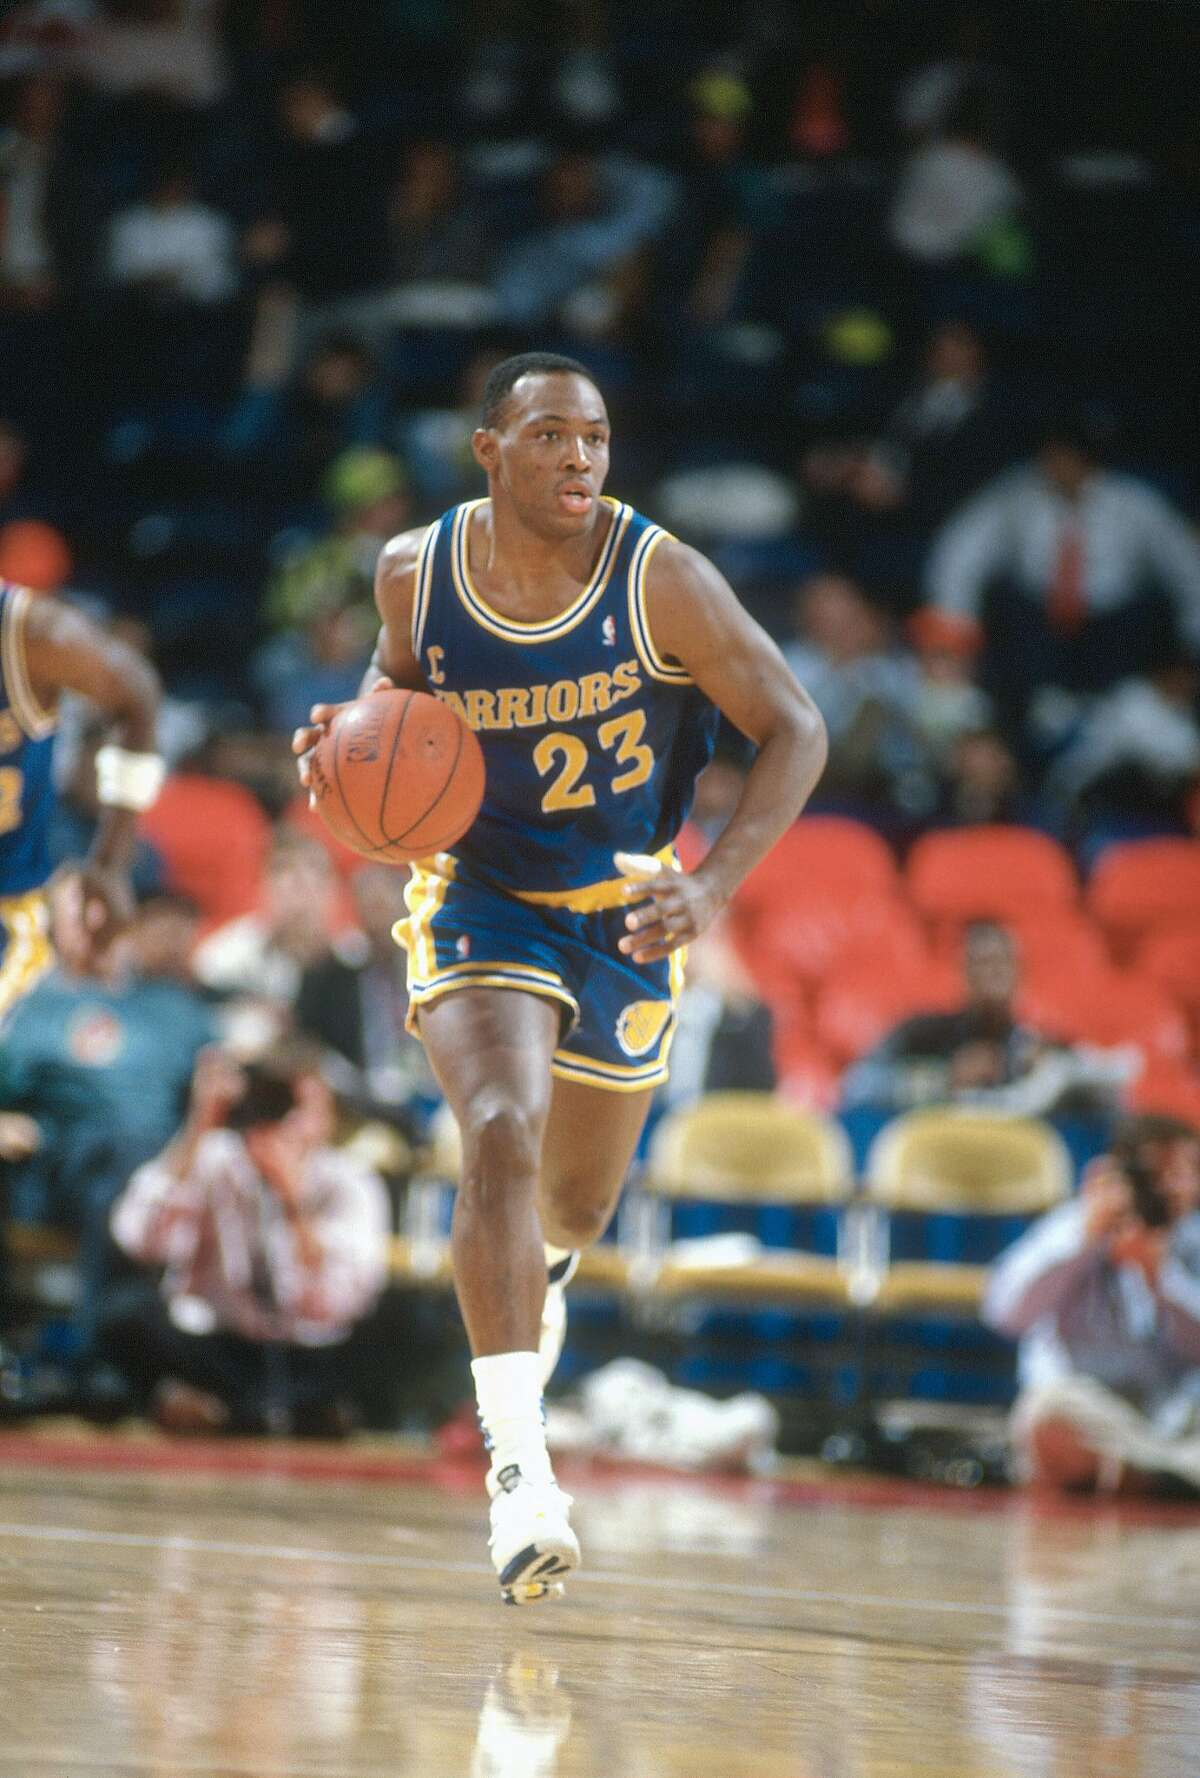 LANDOVER, MD - CIRCA 1990: Mitch Richmond #23 of the Golden State Warriors dribbles the ball up court against the Washington Bullets during an NBA basketball game circa 1990 at the Capital Centre in Landover, Maryland. Richmond played for the Warriors from 1988-91.